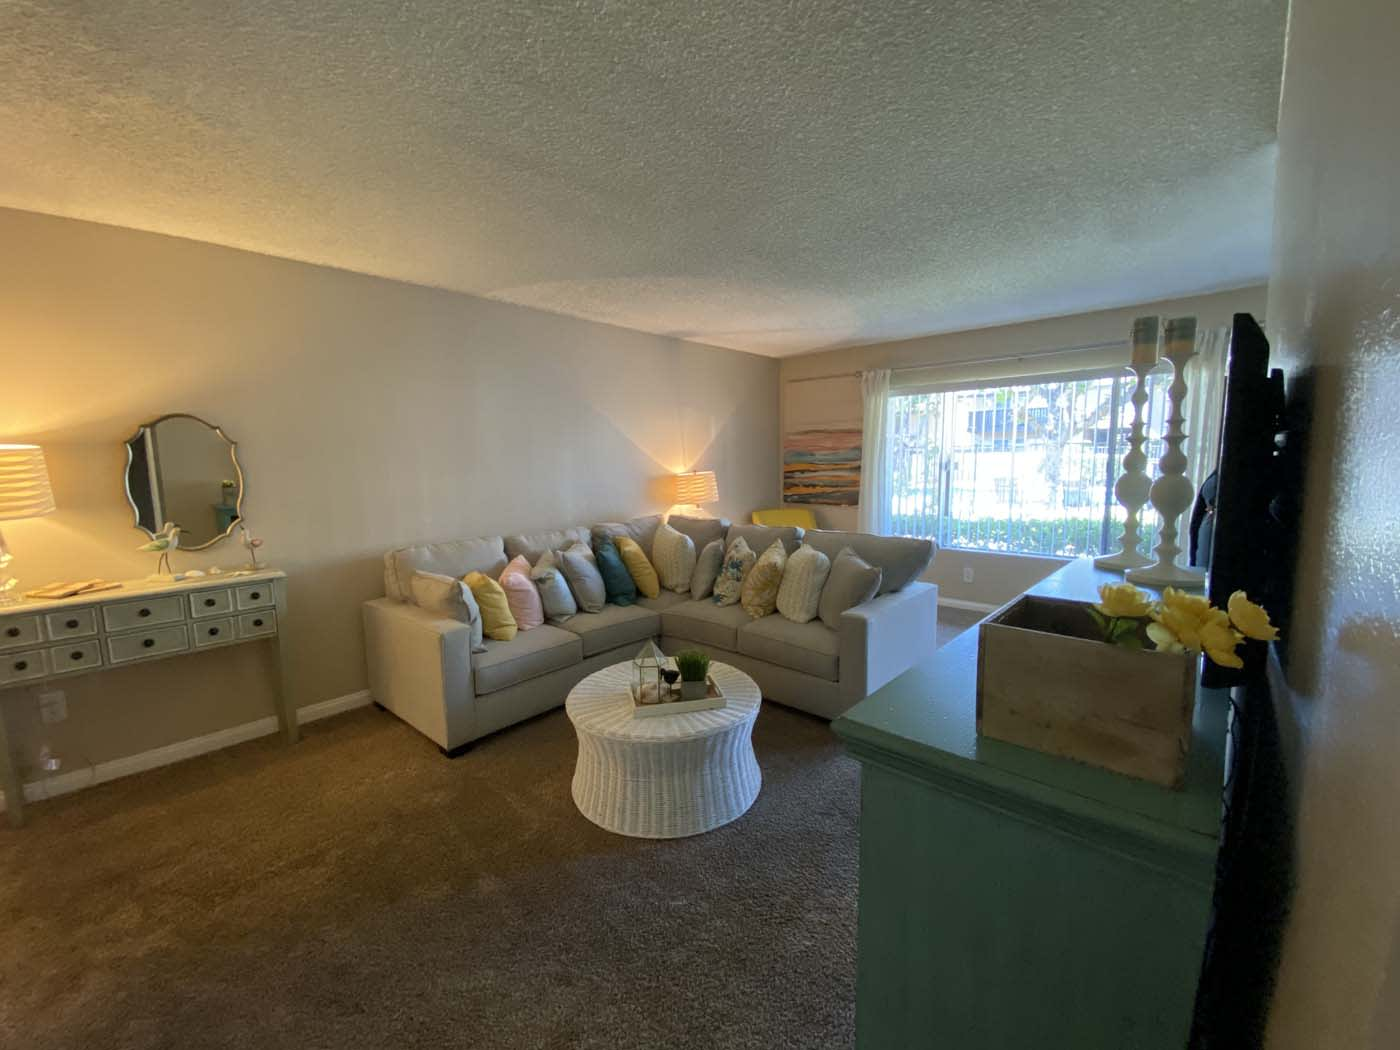 Living Room With Sofa at Stoneridge Apartment, Upland, CA